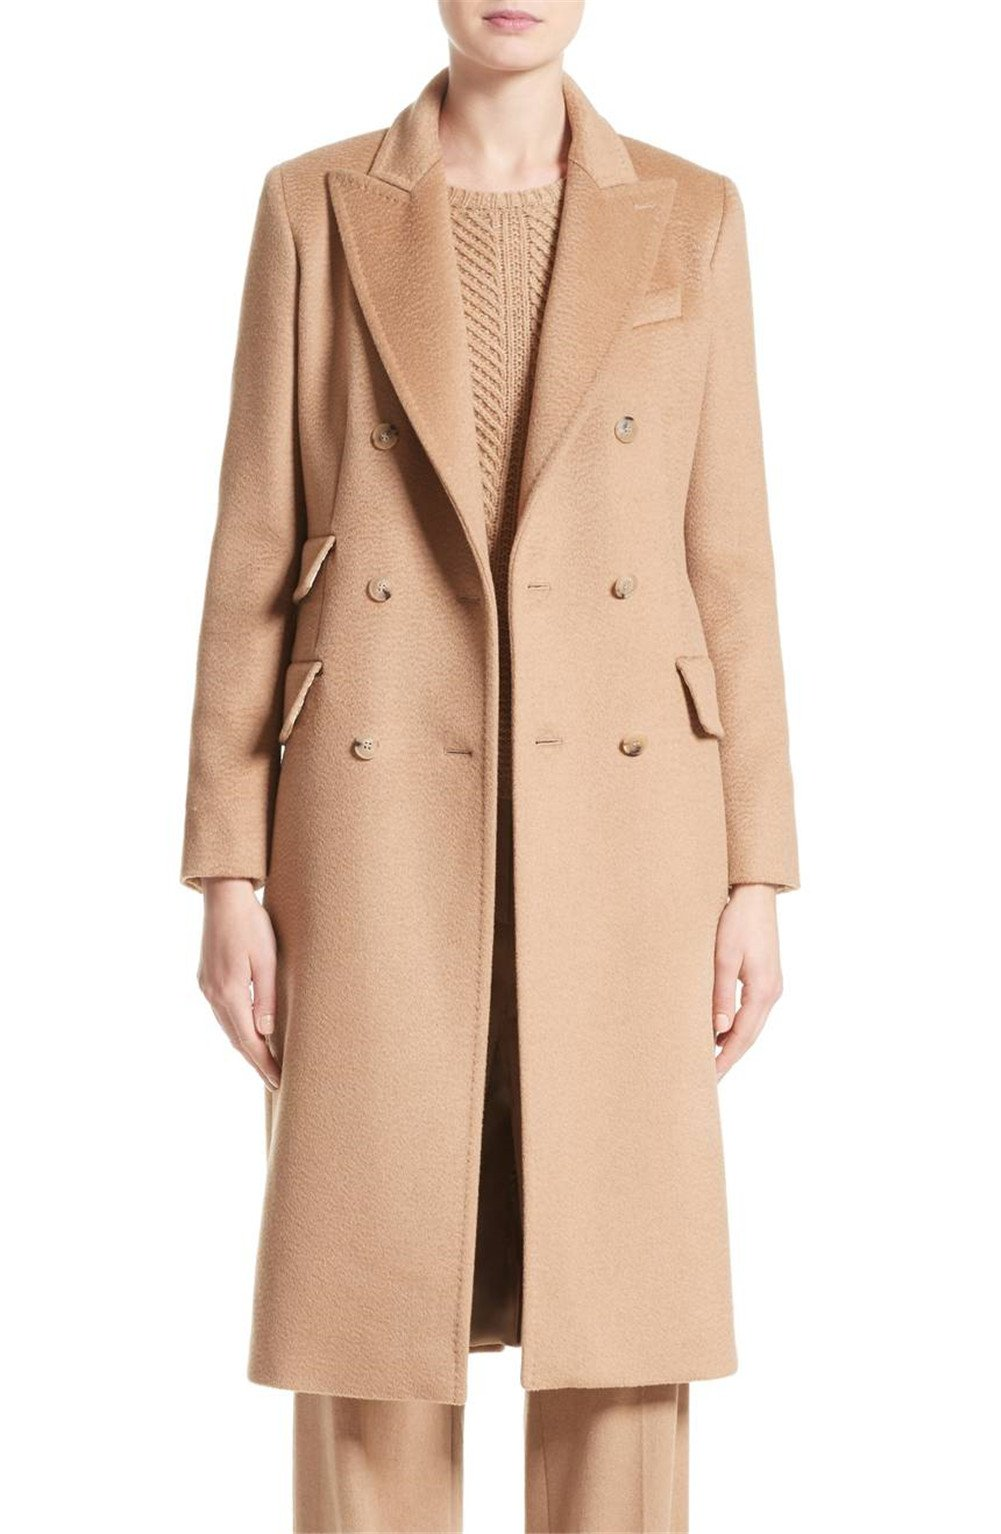 WORLD CLAN Women's Long Wool/Cashmere Double Breasted Brown Camel Hair Derris Trench Coat, Luxurious Winter Parkas Jackets (L)